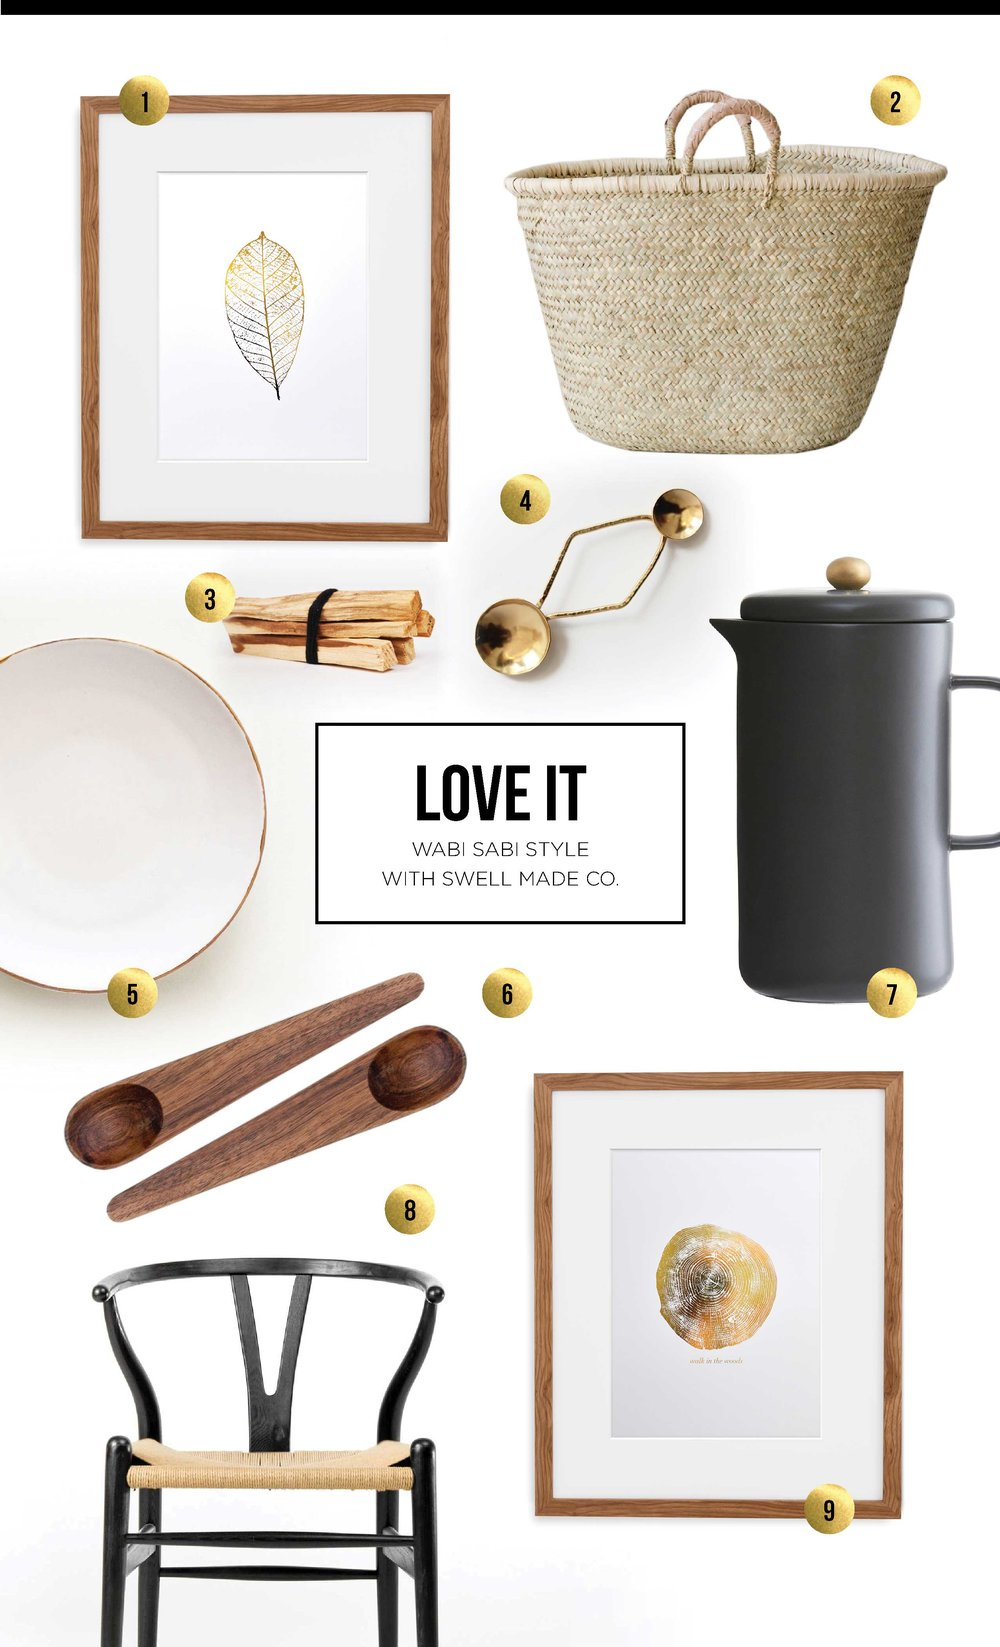 Love It | Wabi Sabi Style with Swell Made Co.